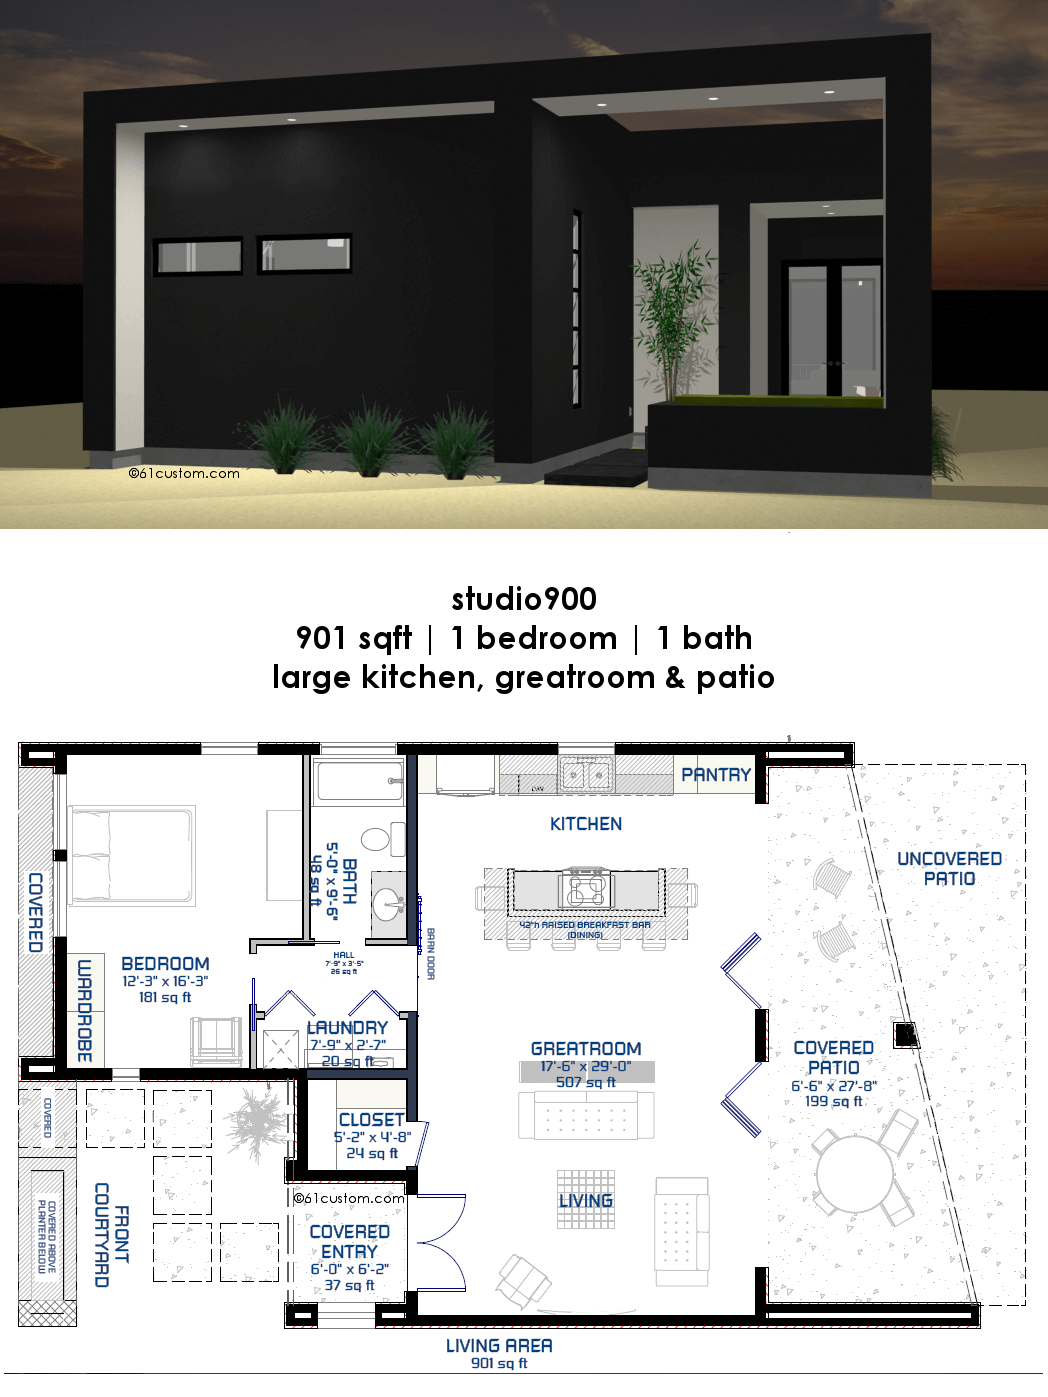 Studio900 small modern house plan with courtyard 61custom for Small modern house floor plans